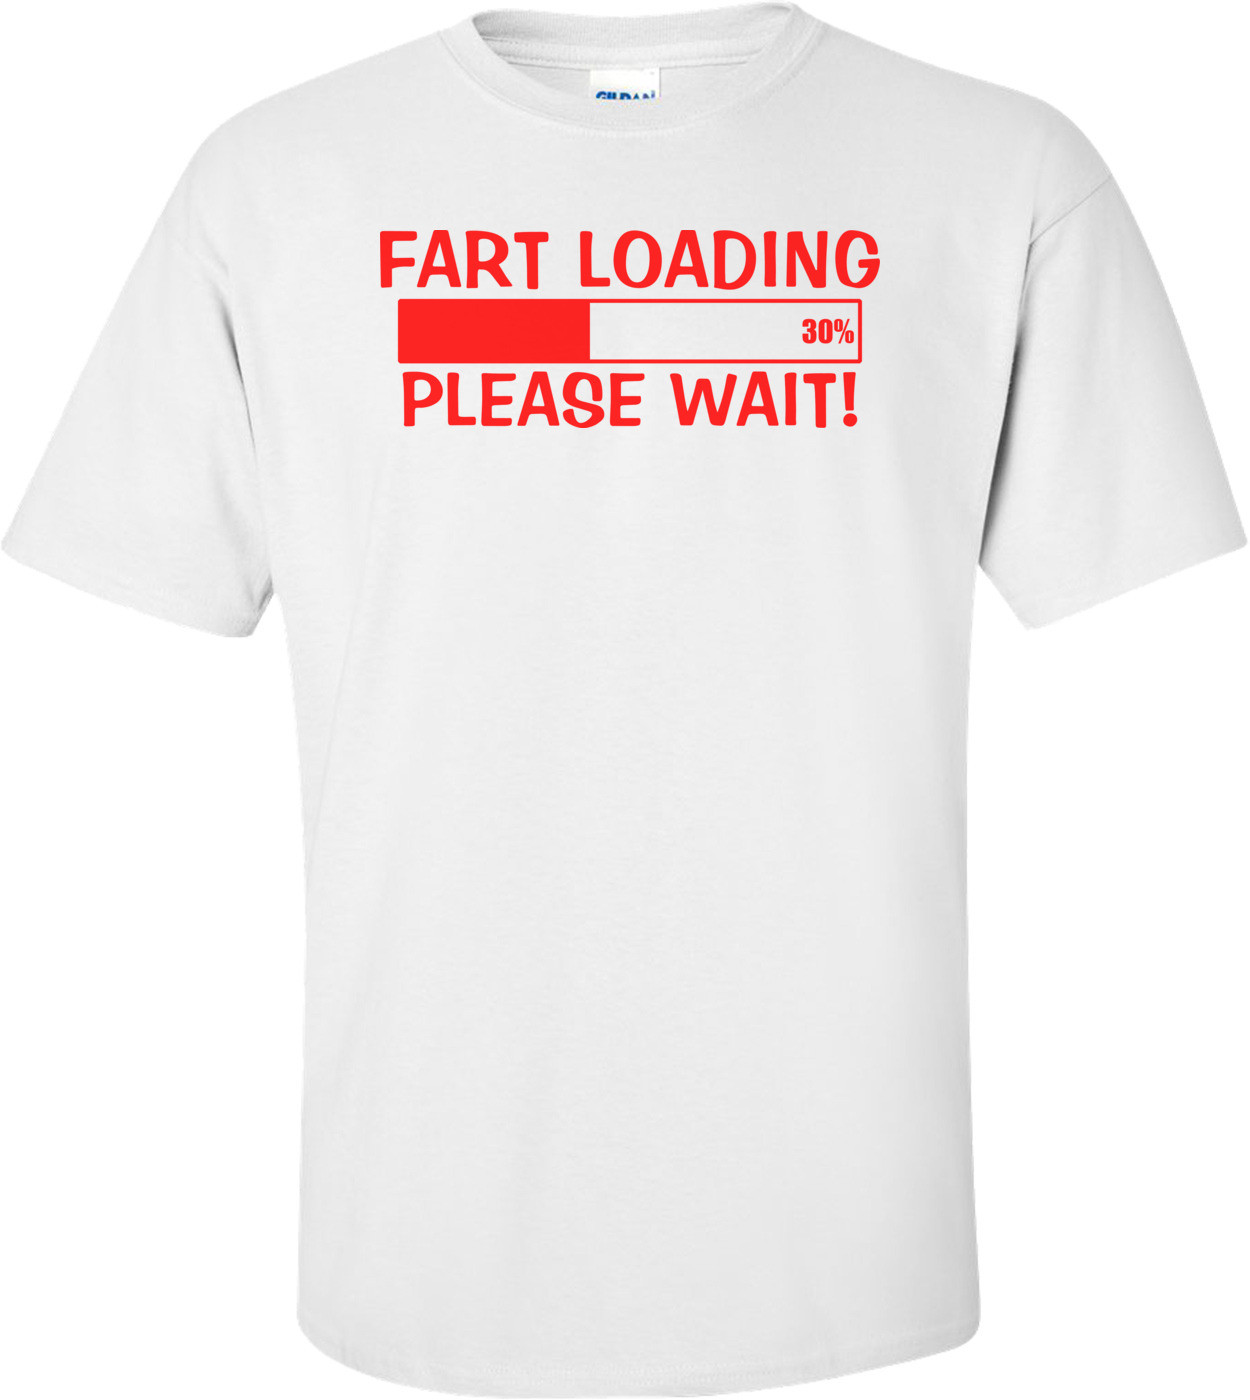 Fart Loading Funny Shirt